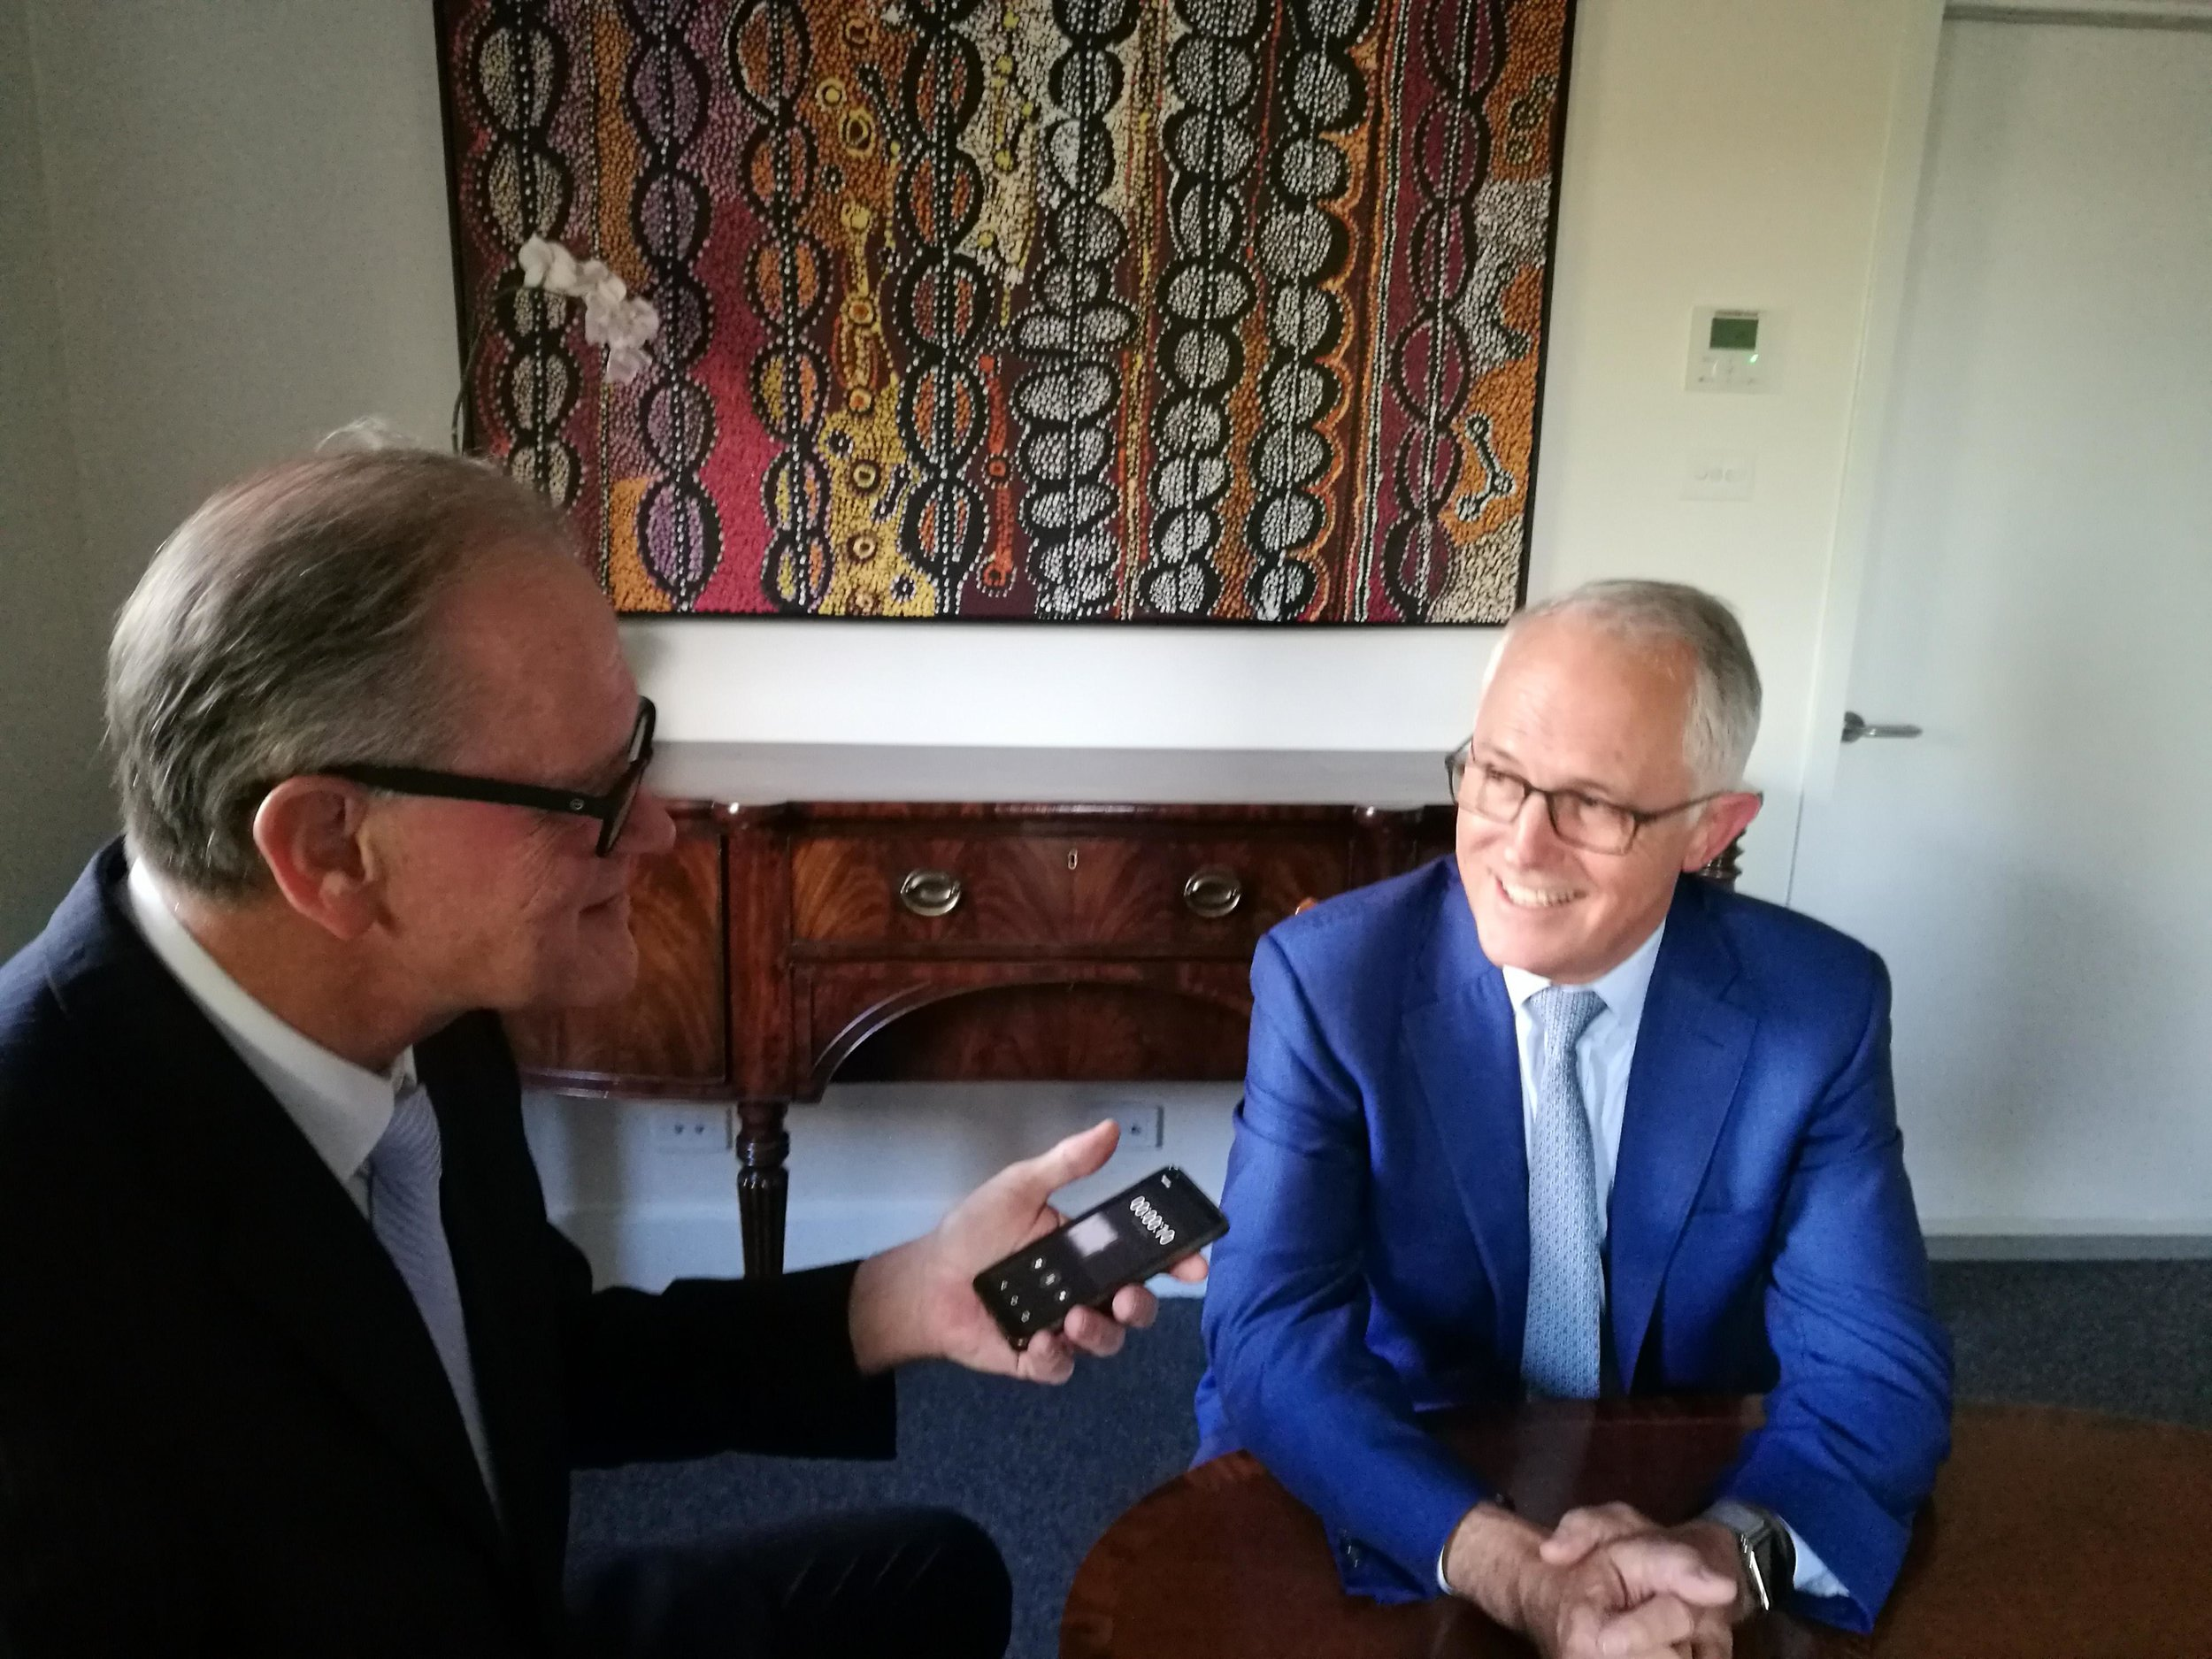 PM Malcolm Turnbull + Tim Shaw at The Lodge in Canberra, February 2019. - We spoke about all of the current issues of the day, but we sat in the sunniest room of this historic home. What I discovered was what he and Lucy had done to restore the sun to what they enjoyed as the 'breakfast room'.